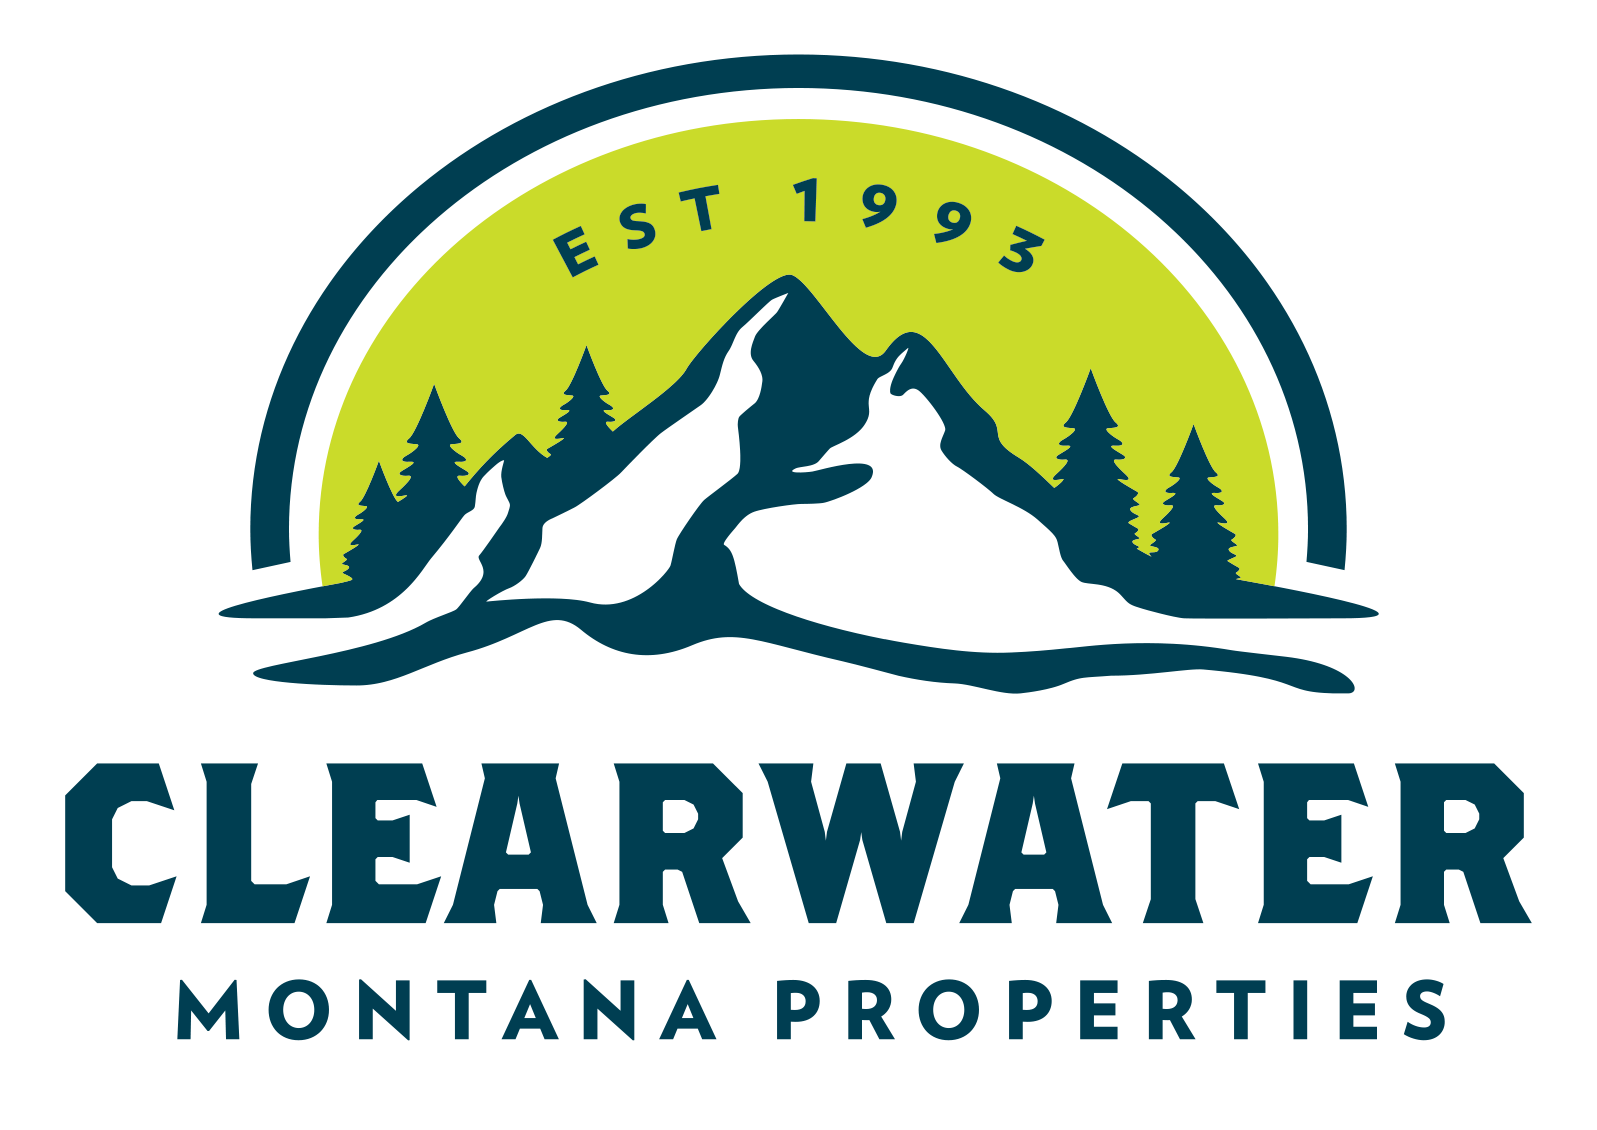 ClearwaterMTProperties_Logo_GreenBackground.png